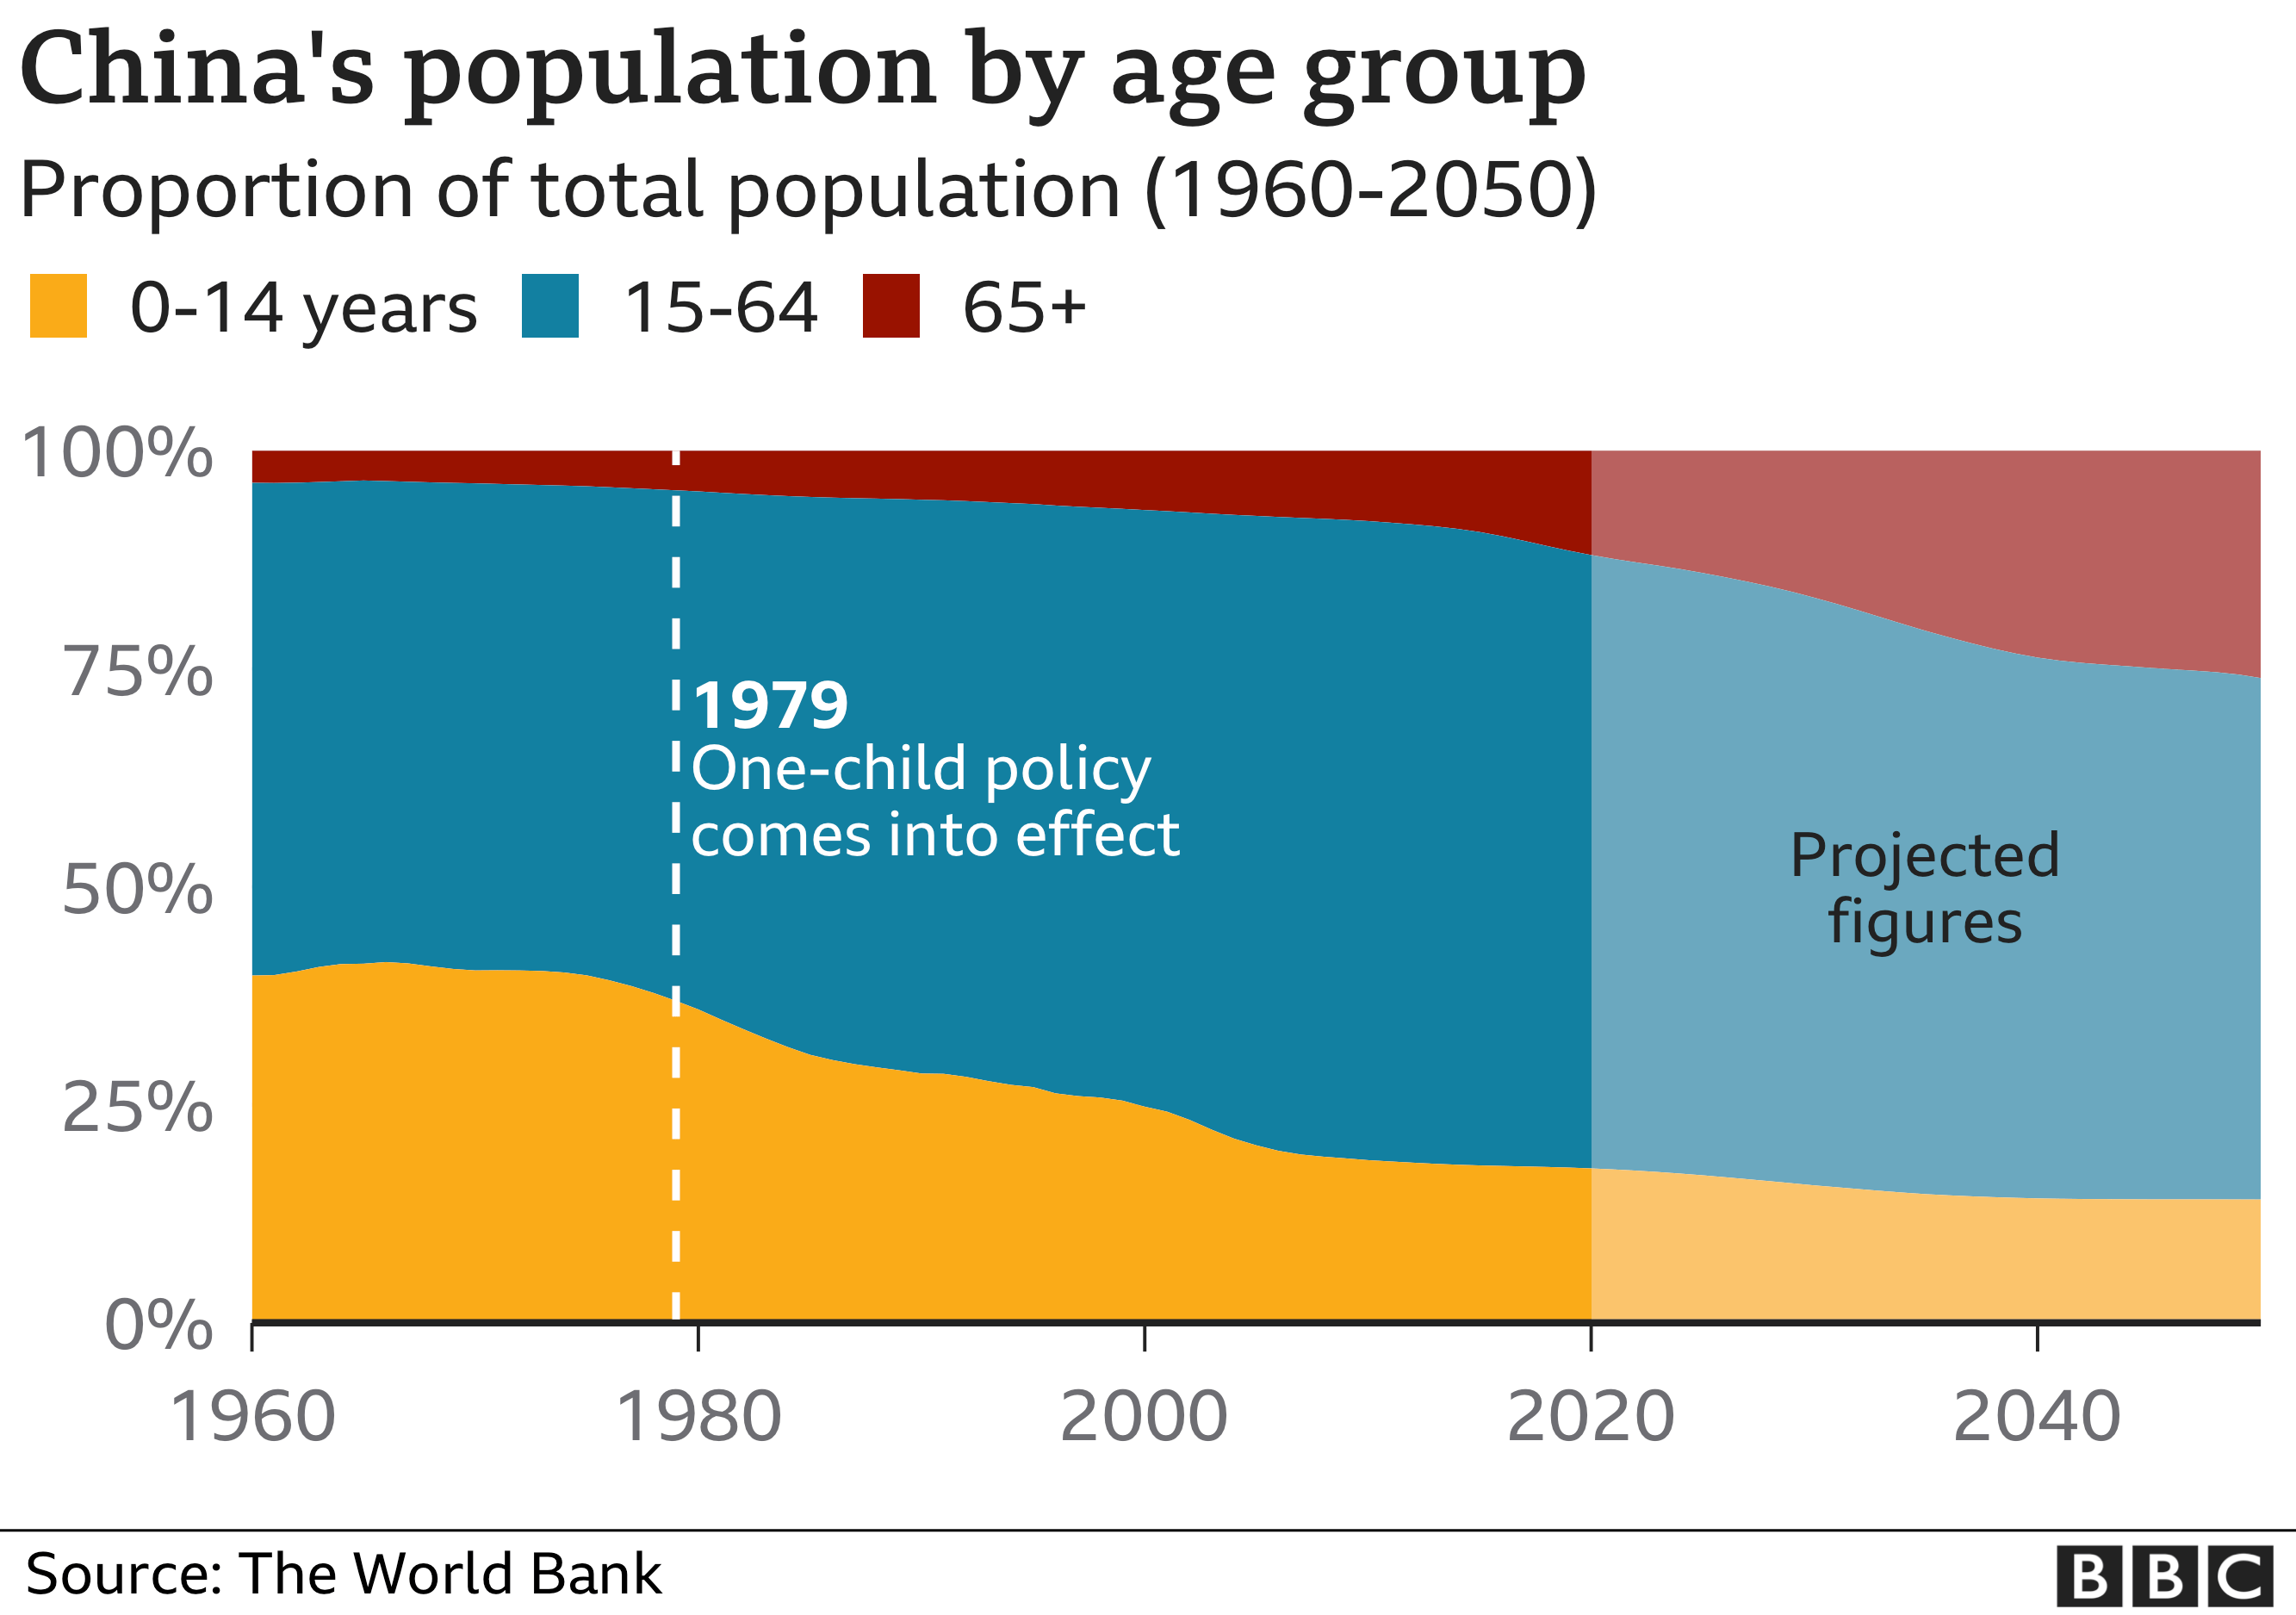 graph showing China's population by age group